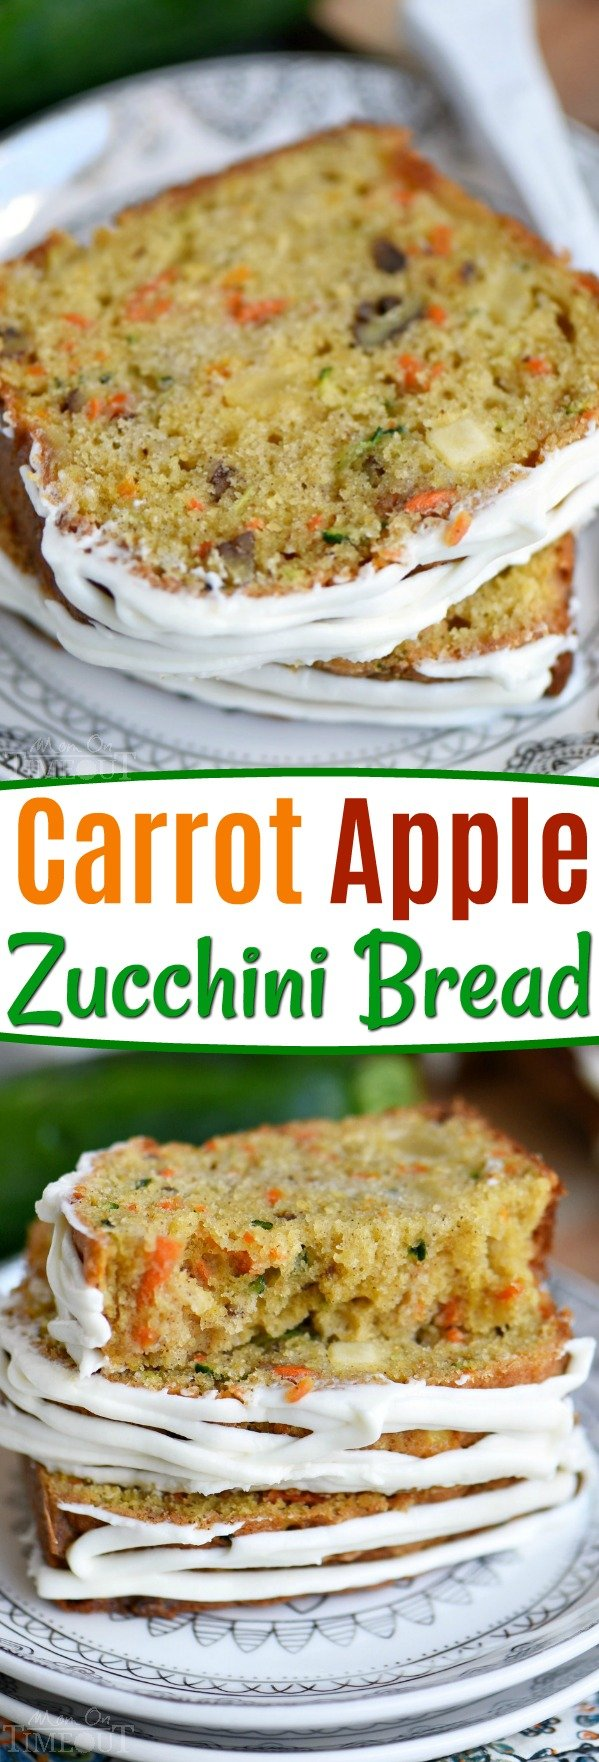 This Carrot Apple Zucchini Bread recipe is incredibly moist and flavorful! Vibrant colors from the carrot, apple, and zucchini makes this quick bread irresisitble!  Sure to be a new favorite! // Mom On Timeout